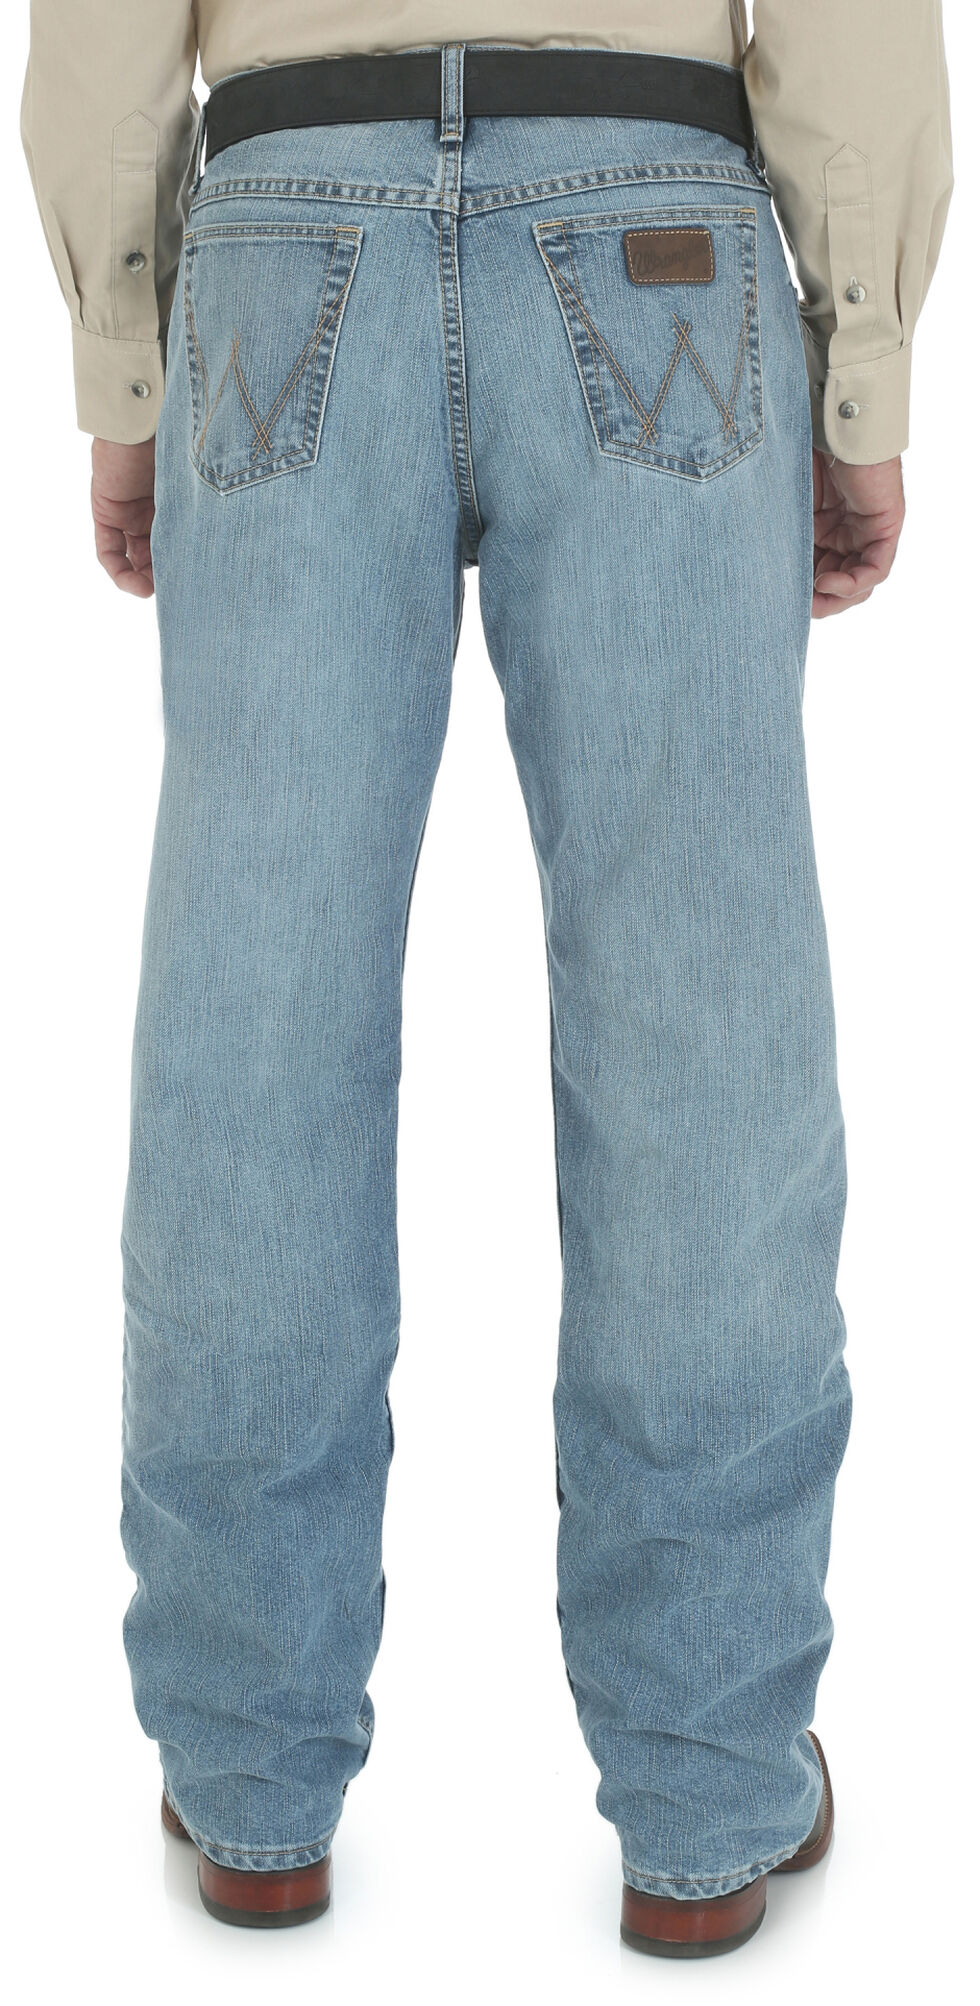 Wrangler 20X Cool Vantage Competition Fit Jeans - Ocean Blue, Denim, hi-res